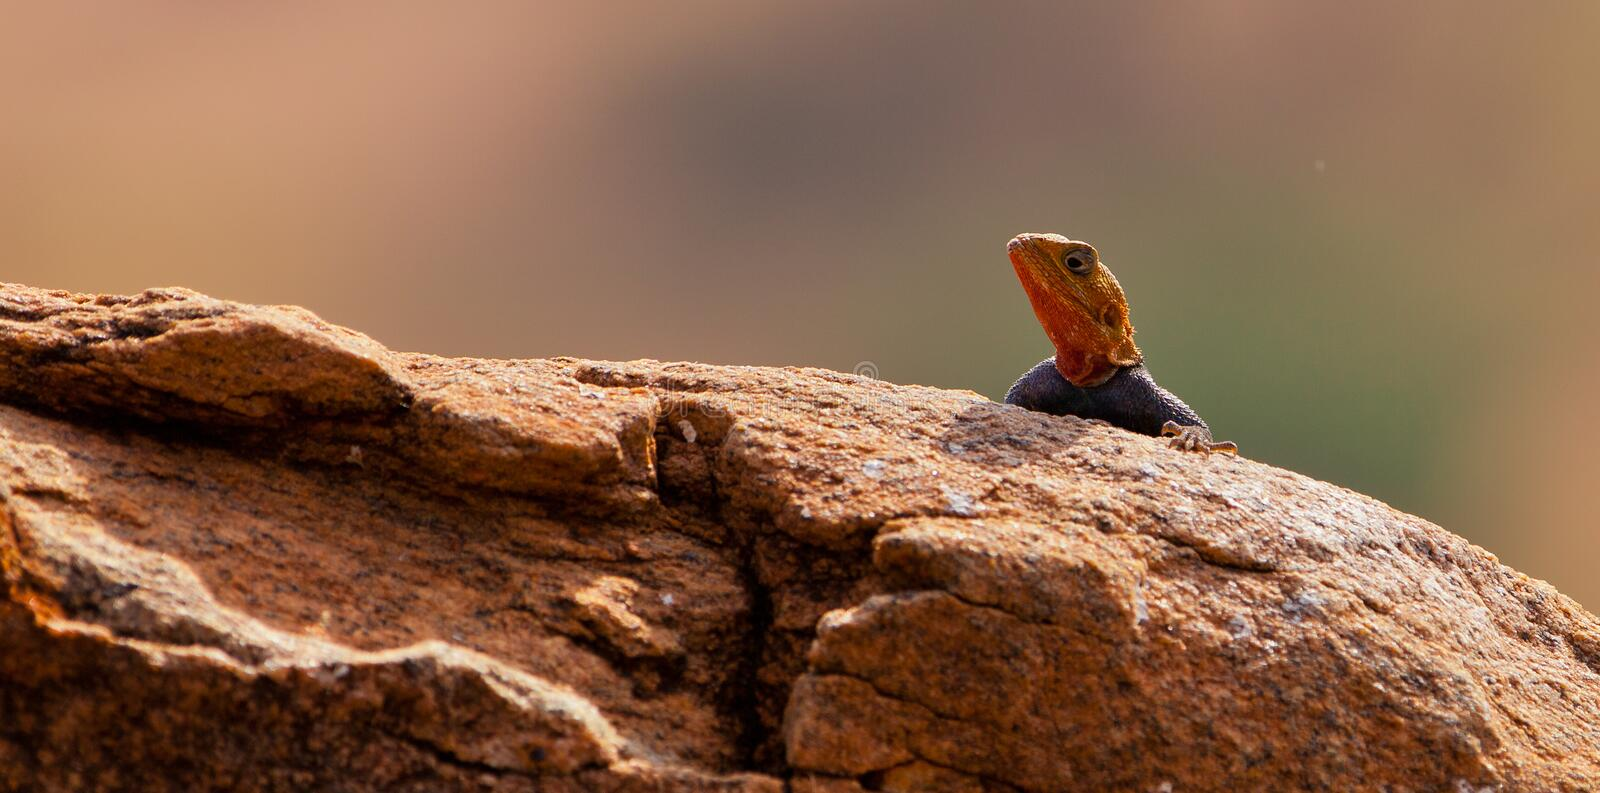 Download Red-headed Agama stock photo. Image of equator, head - 24919320